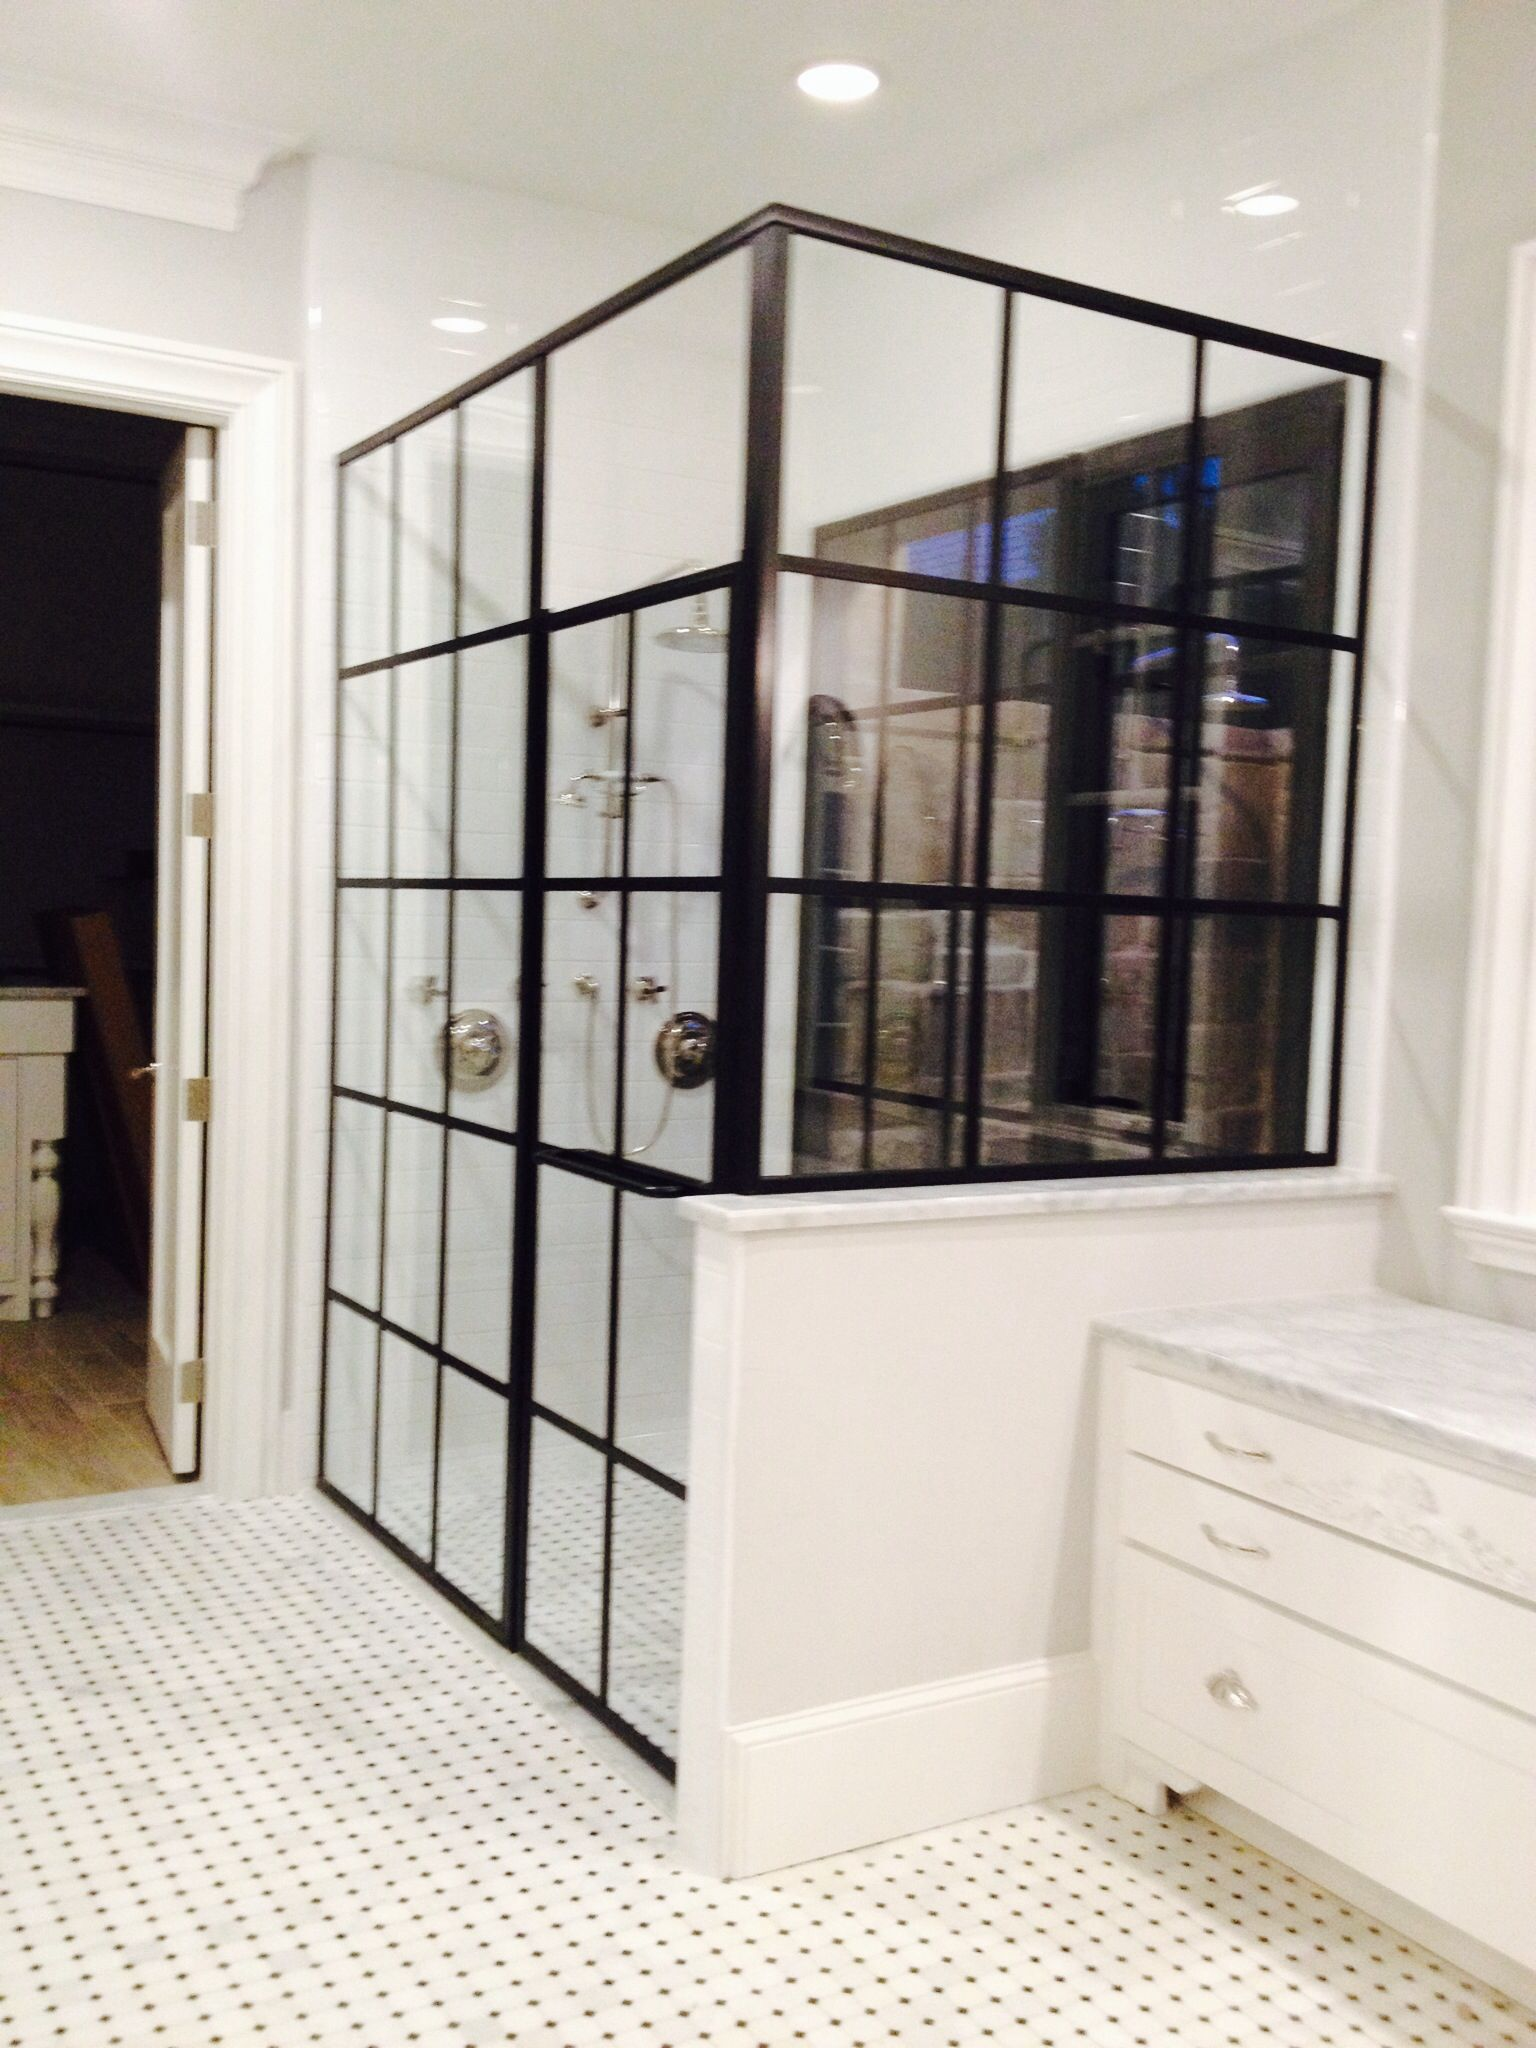 Framed Shower With Cross Bars To Match The Store Front